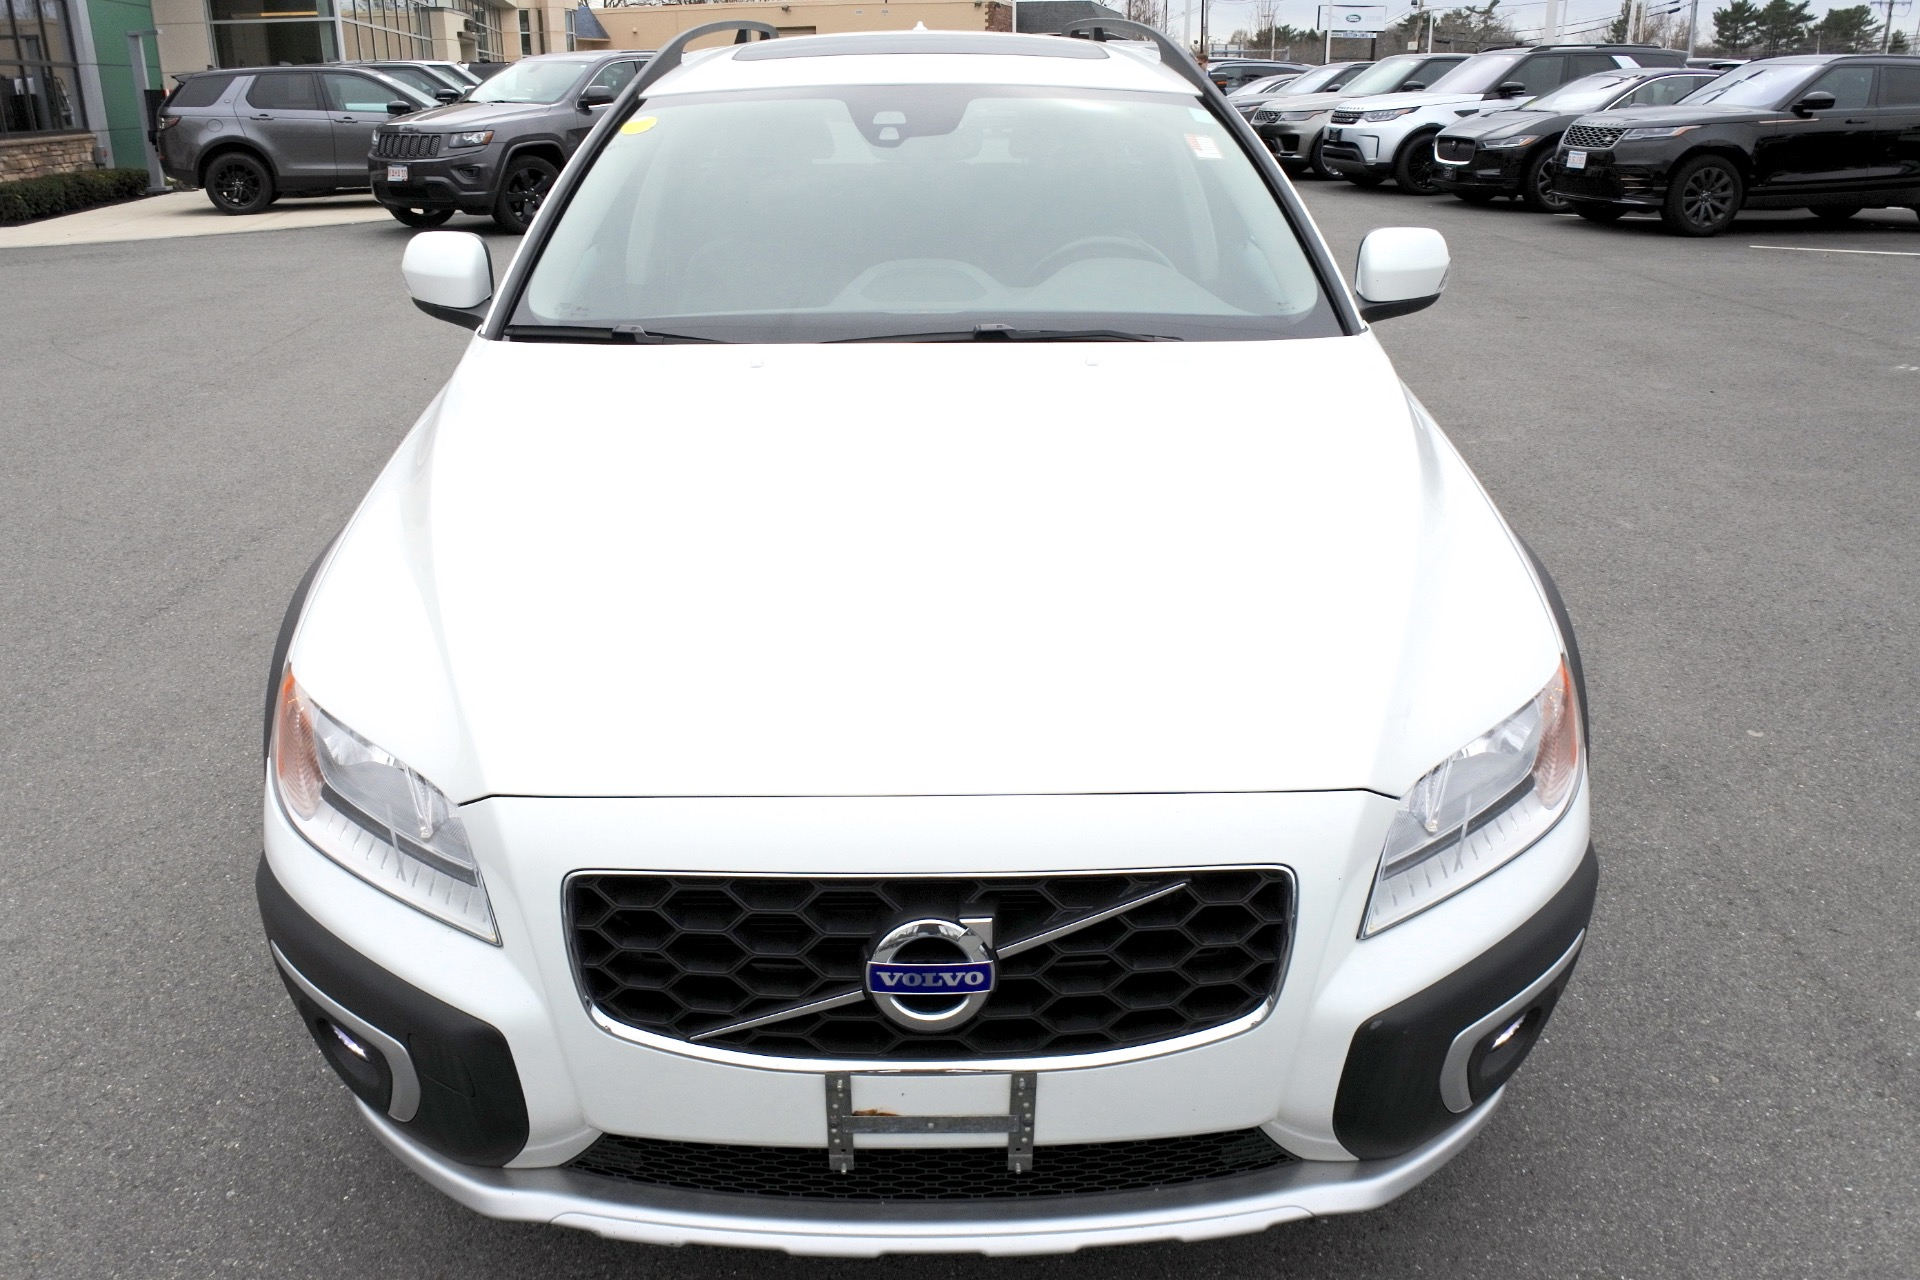 Used 2016 Volvo Xc70 T5 Premier AWD Used 2016 Volvo Xc70 T5 Premier AWD for sale  at Metro West Motorcars LLC in Shrewsbury MA 8